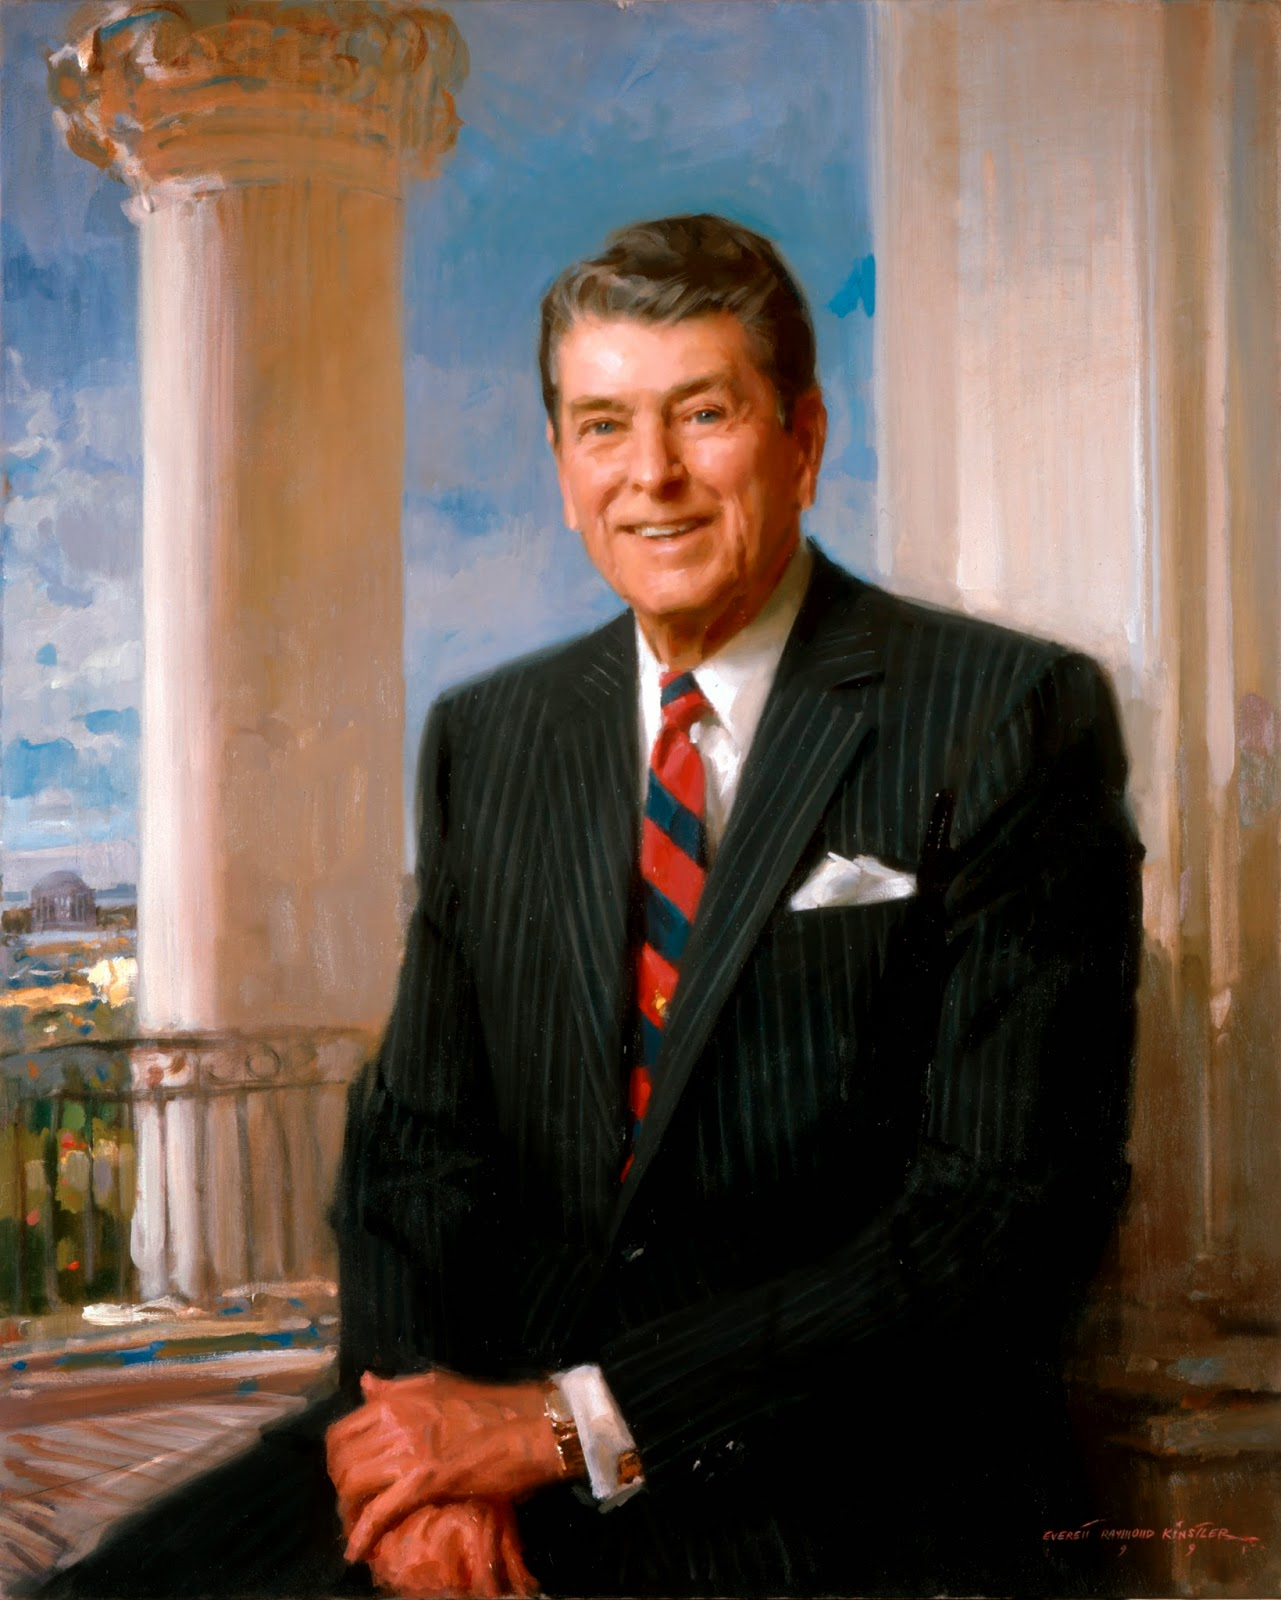 Portrait of Ronald Reagan, Everett Raymond Kinstler, International Art Gallery, Self Portrait, Art Gallery, Portraits Of Painters, Fine arts, Self-Portraits, Ronald Reagan